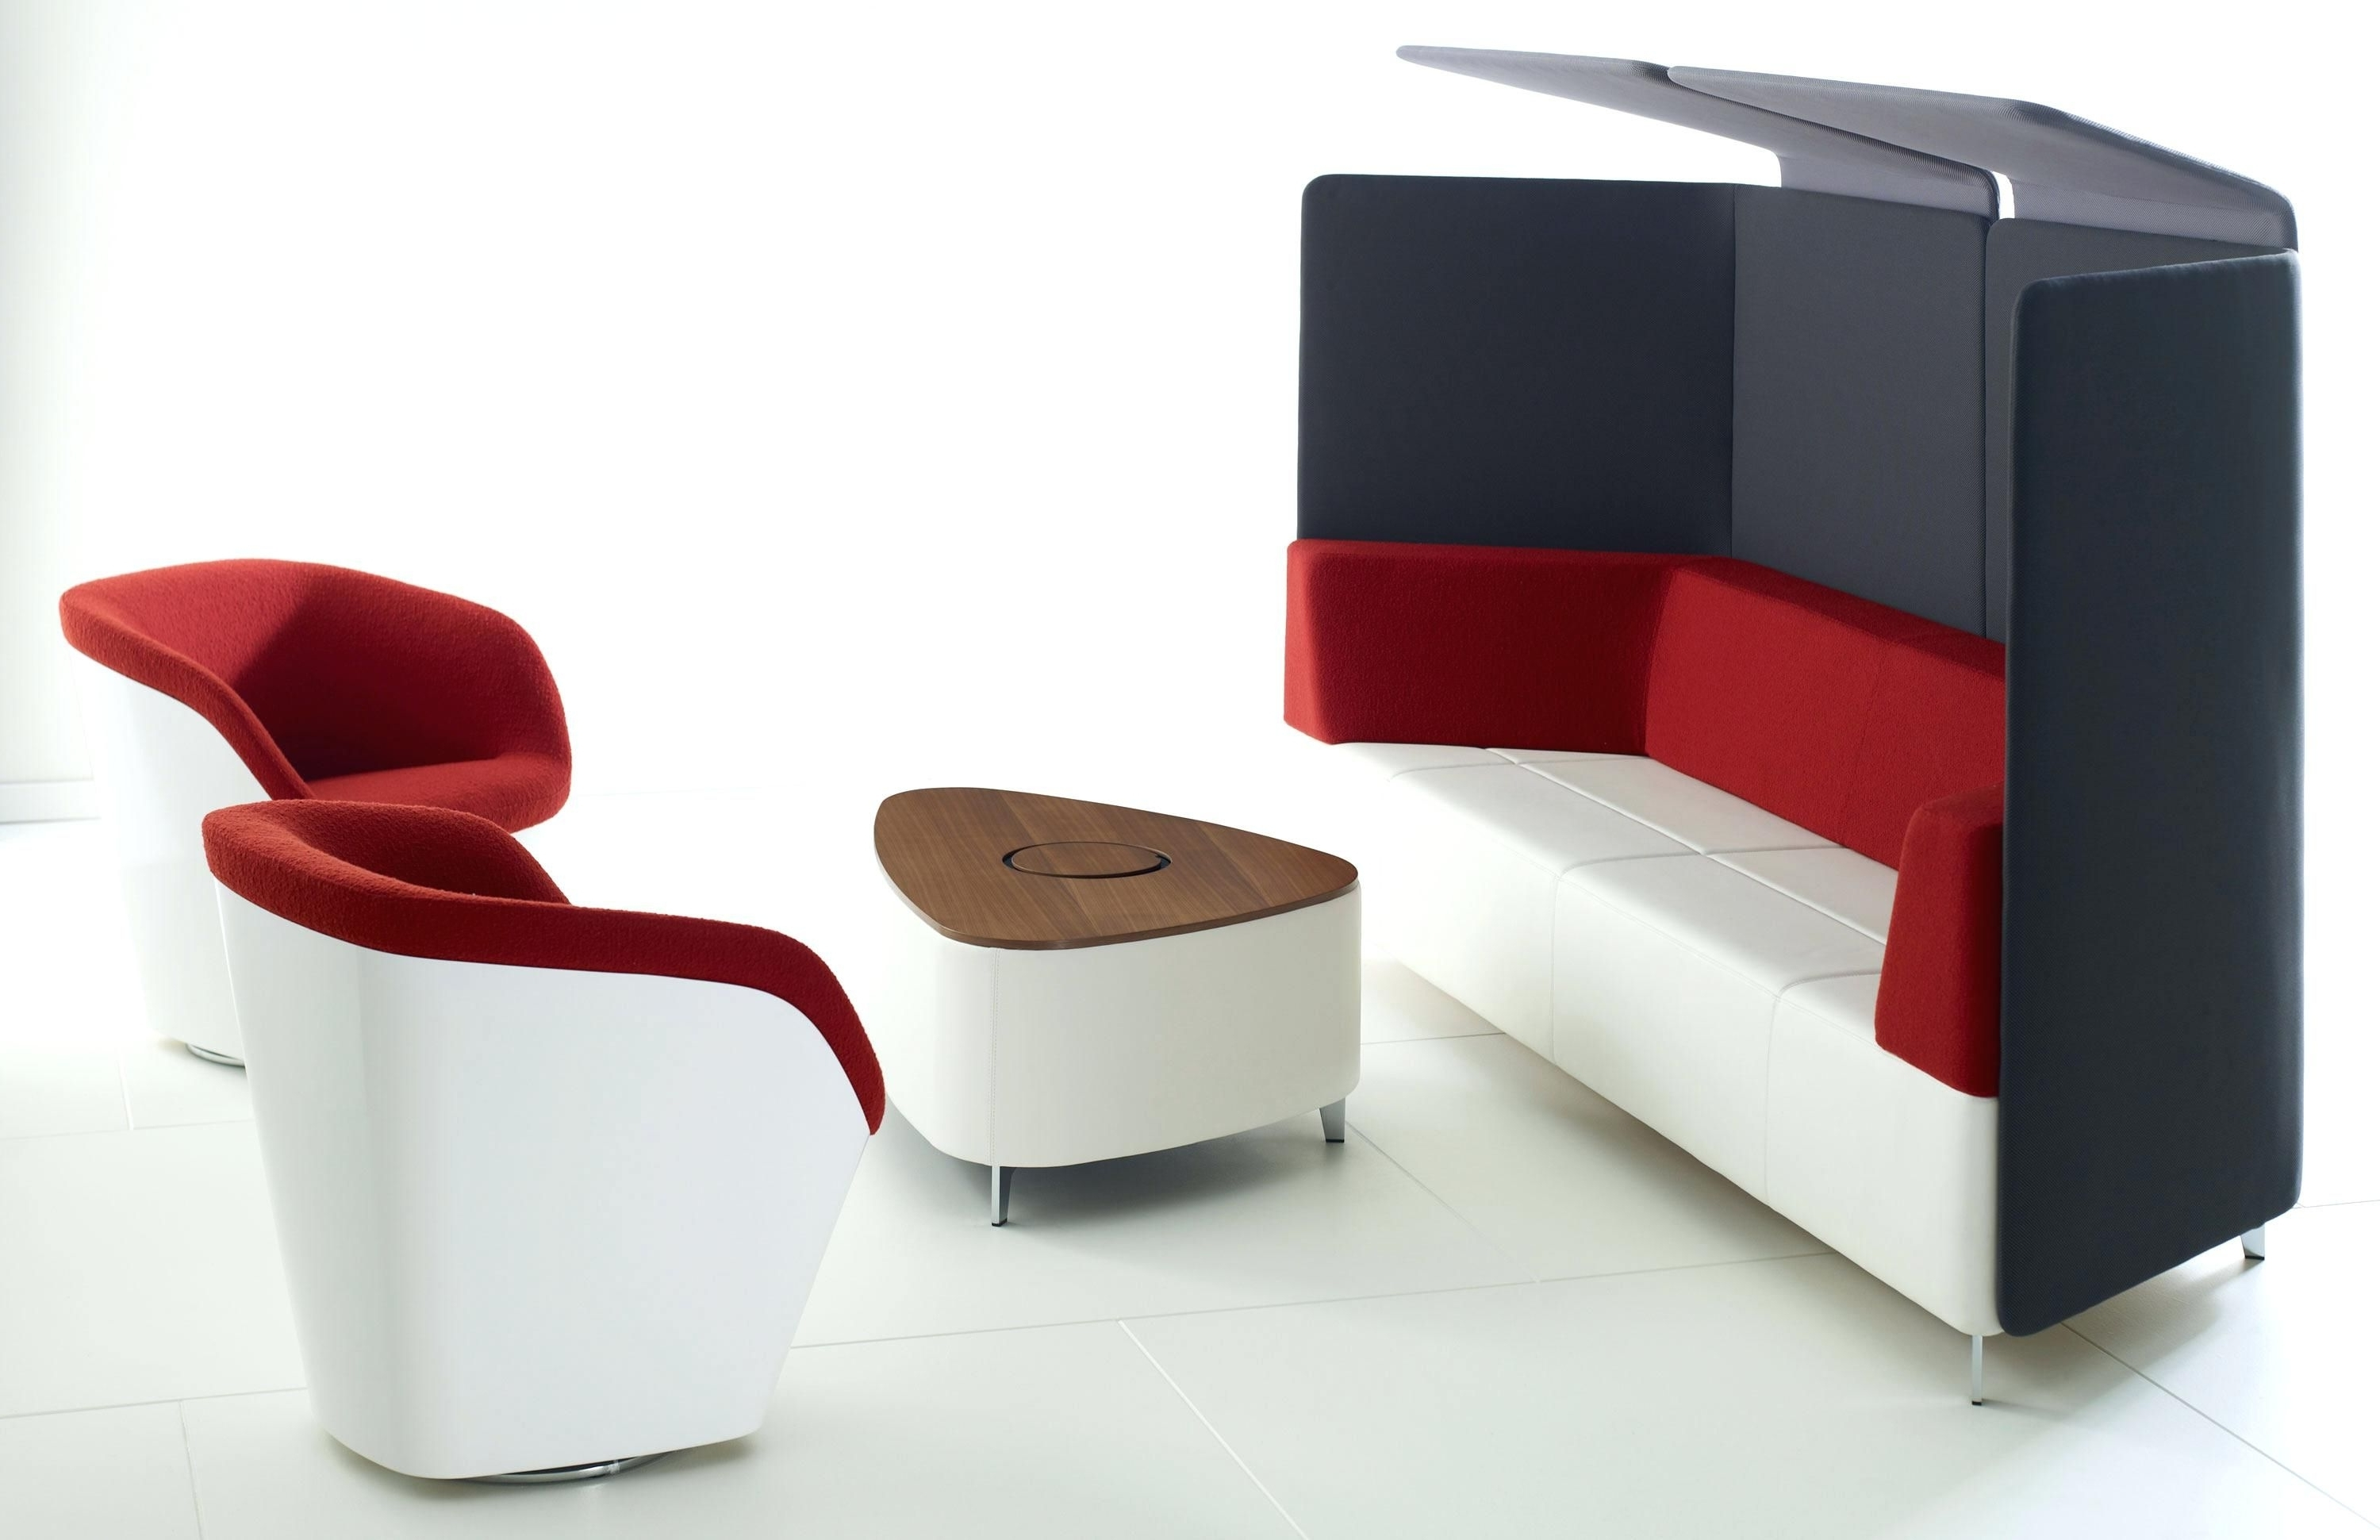 Explore Gallery of Office Sofas And Chairs (Showing 10 of 20 ...